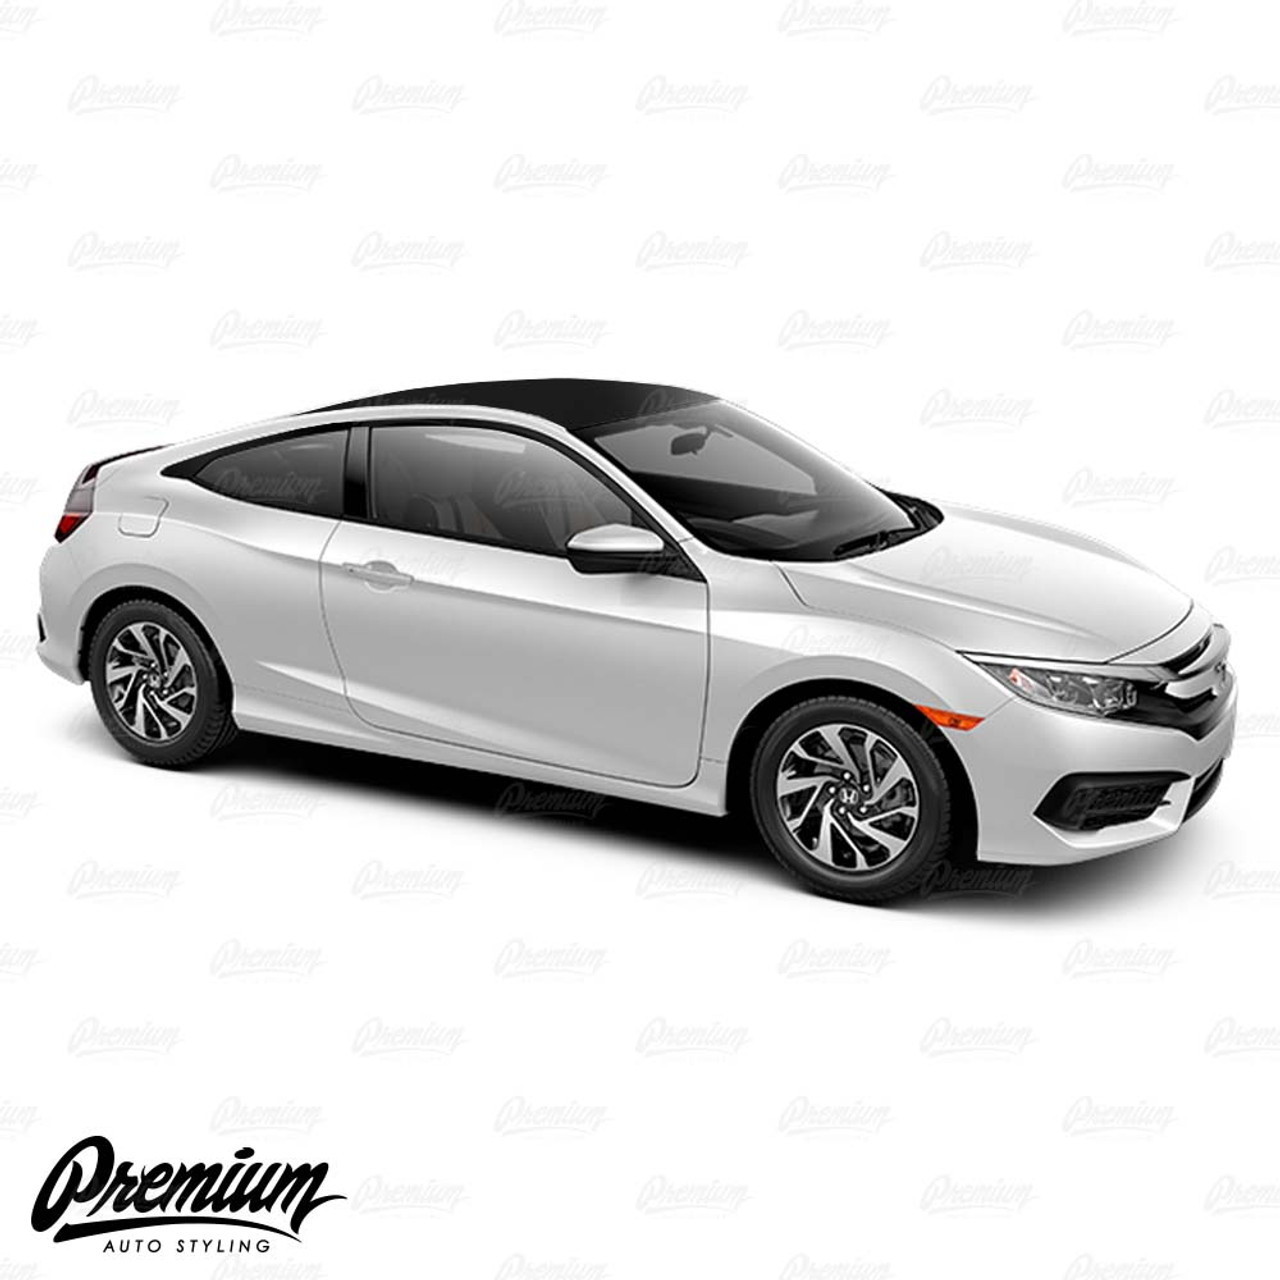 Gloss Black Roof Wrap For 2016 2018 Honda Civic Coupe Premium Auto Styling